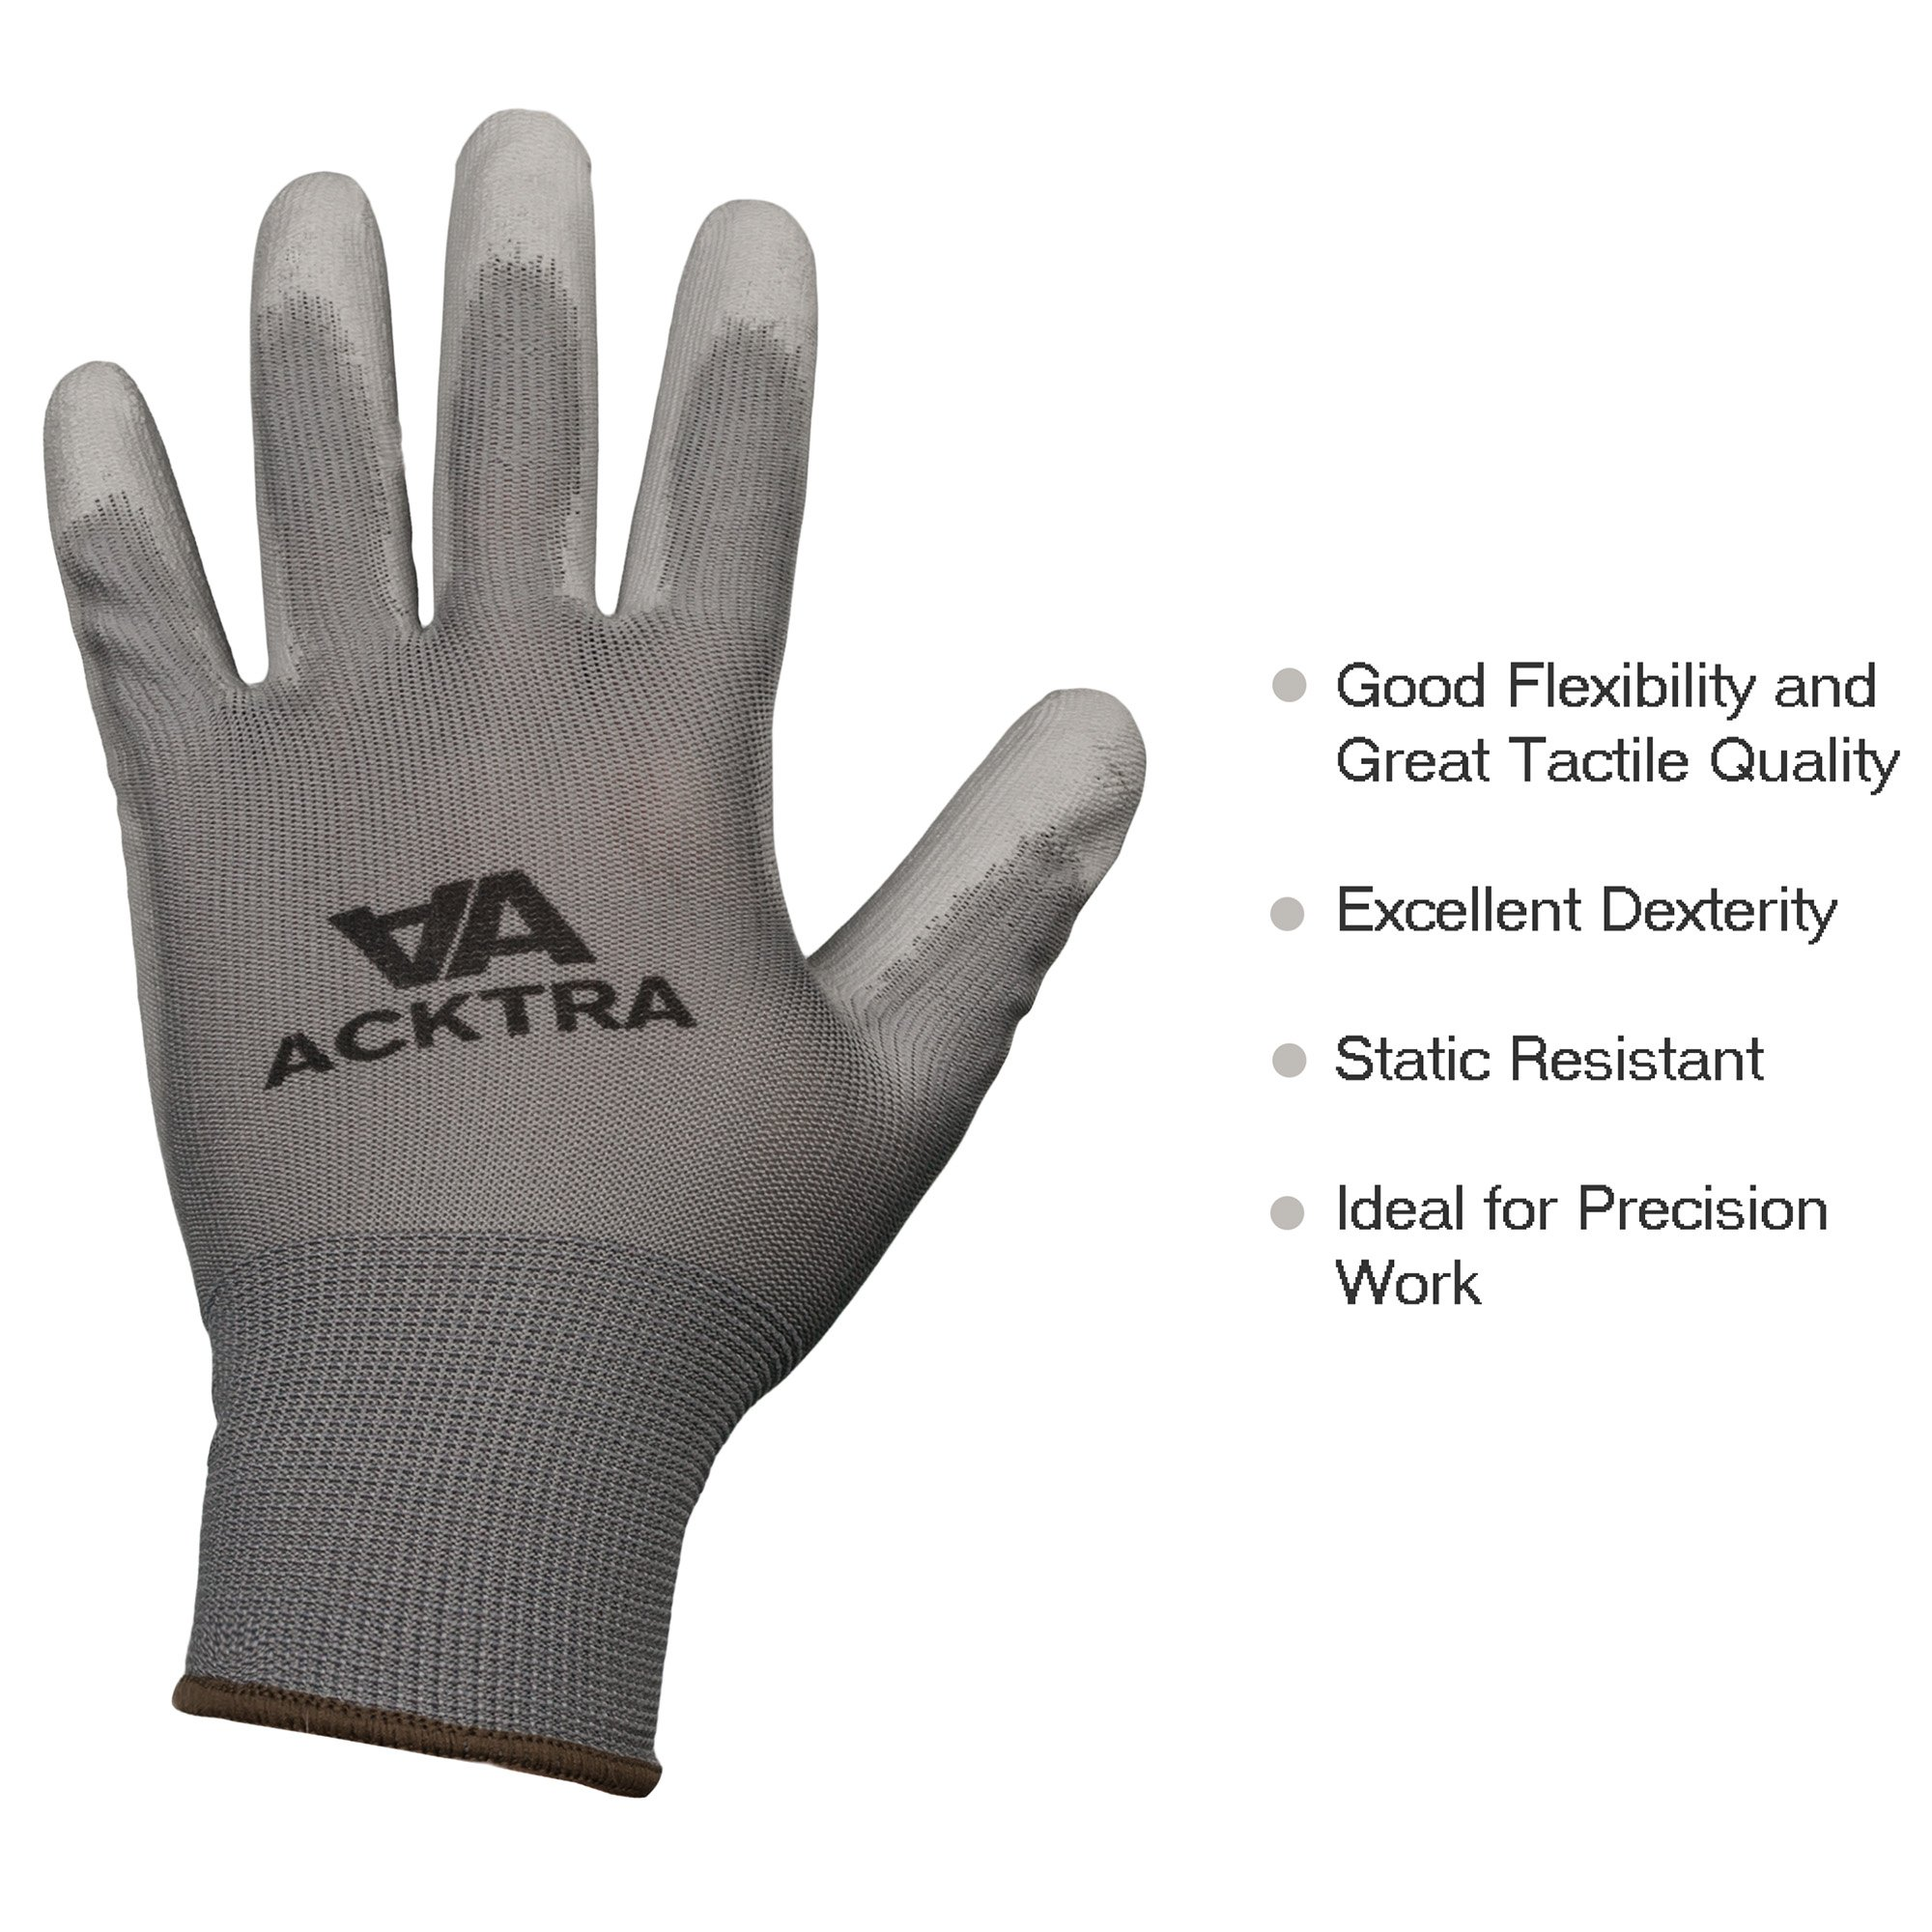 ACKTRA Ultra-Thin Polyurethane (PU) Coated Nylon Safety WORK GLOVES 12 Pairs, Knit Wrist Cuff, for Precision Work, for Men & Women, WG002 Black Polyester, Black Polyurethane, Small 4